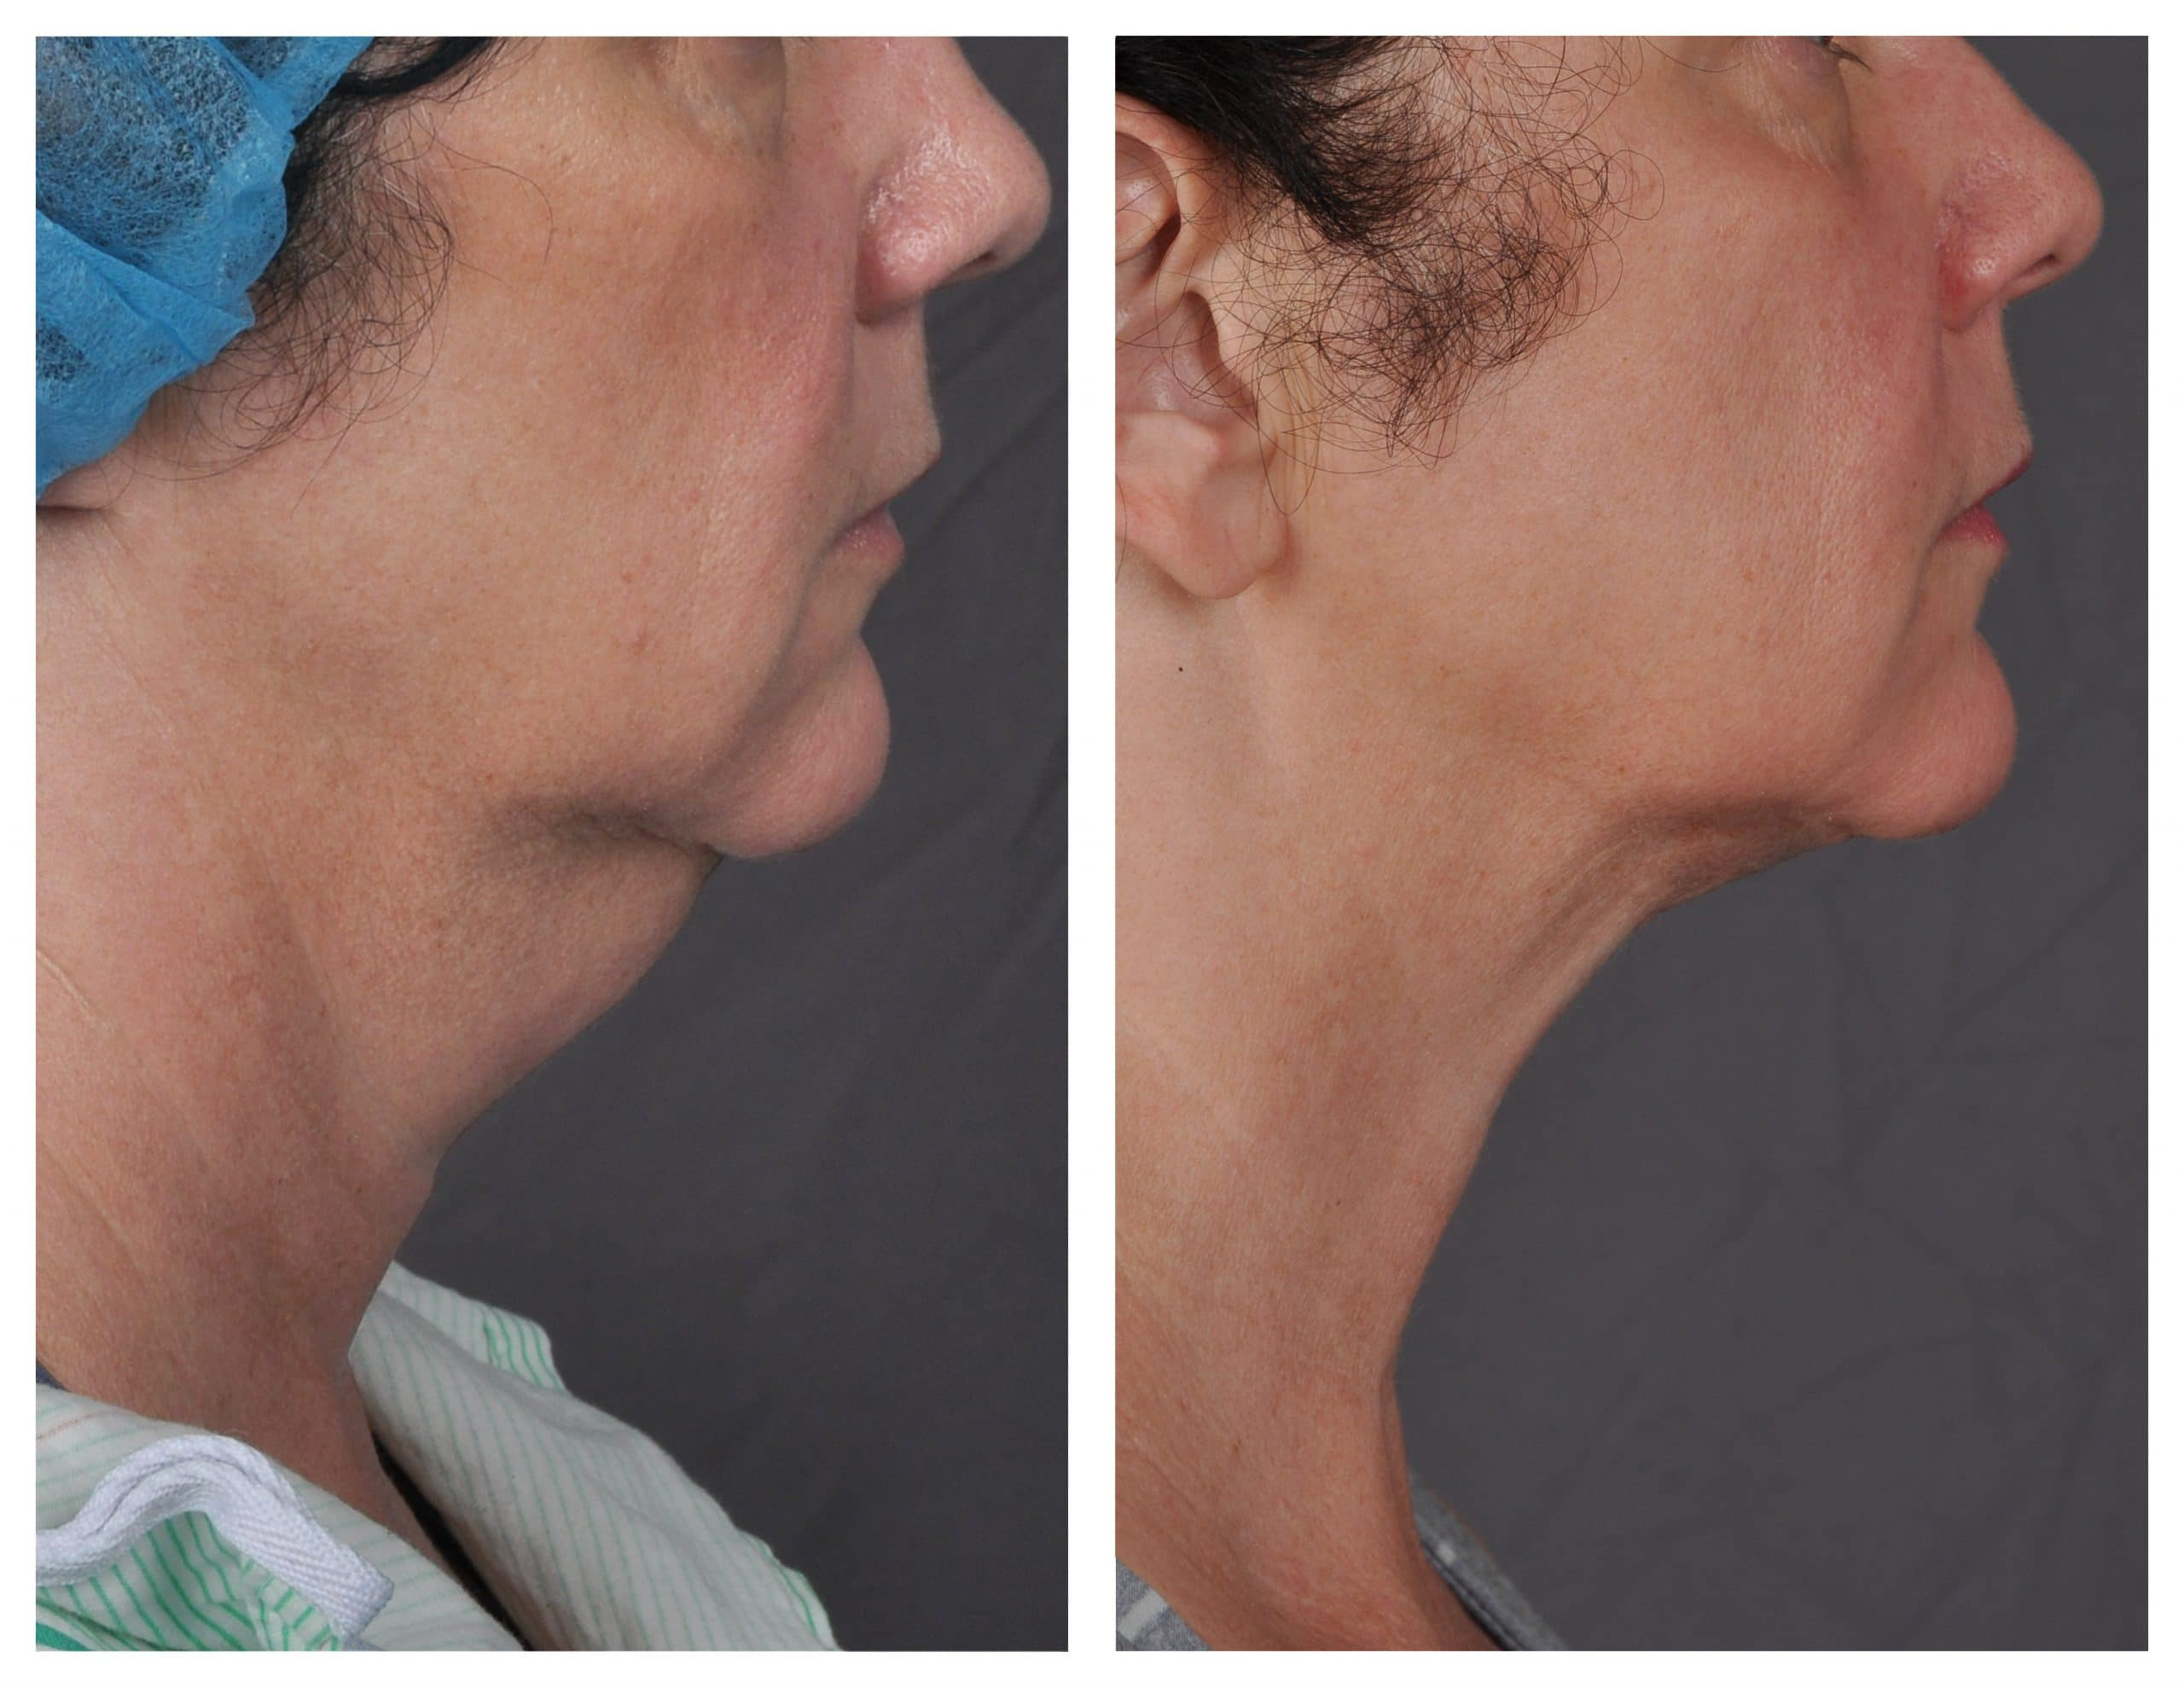 j-plasma before and after